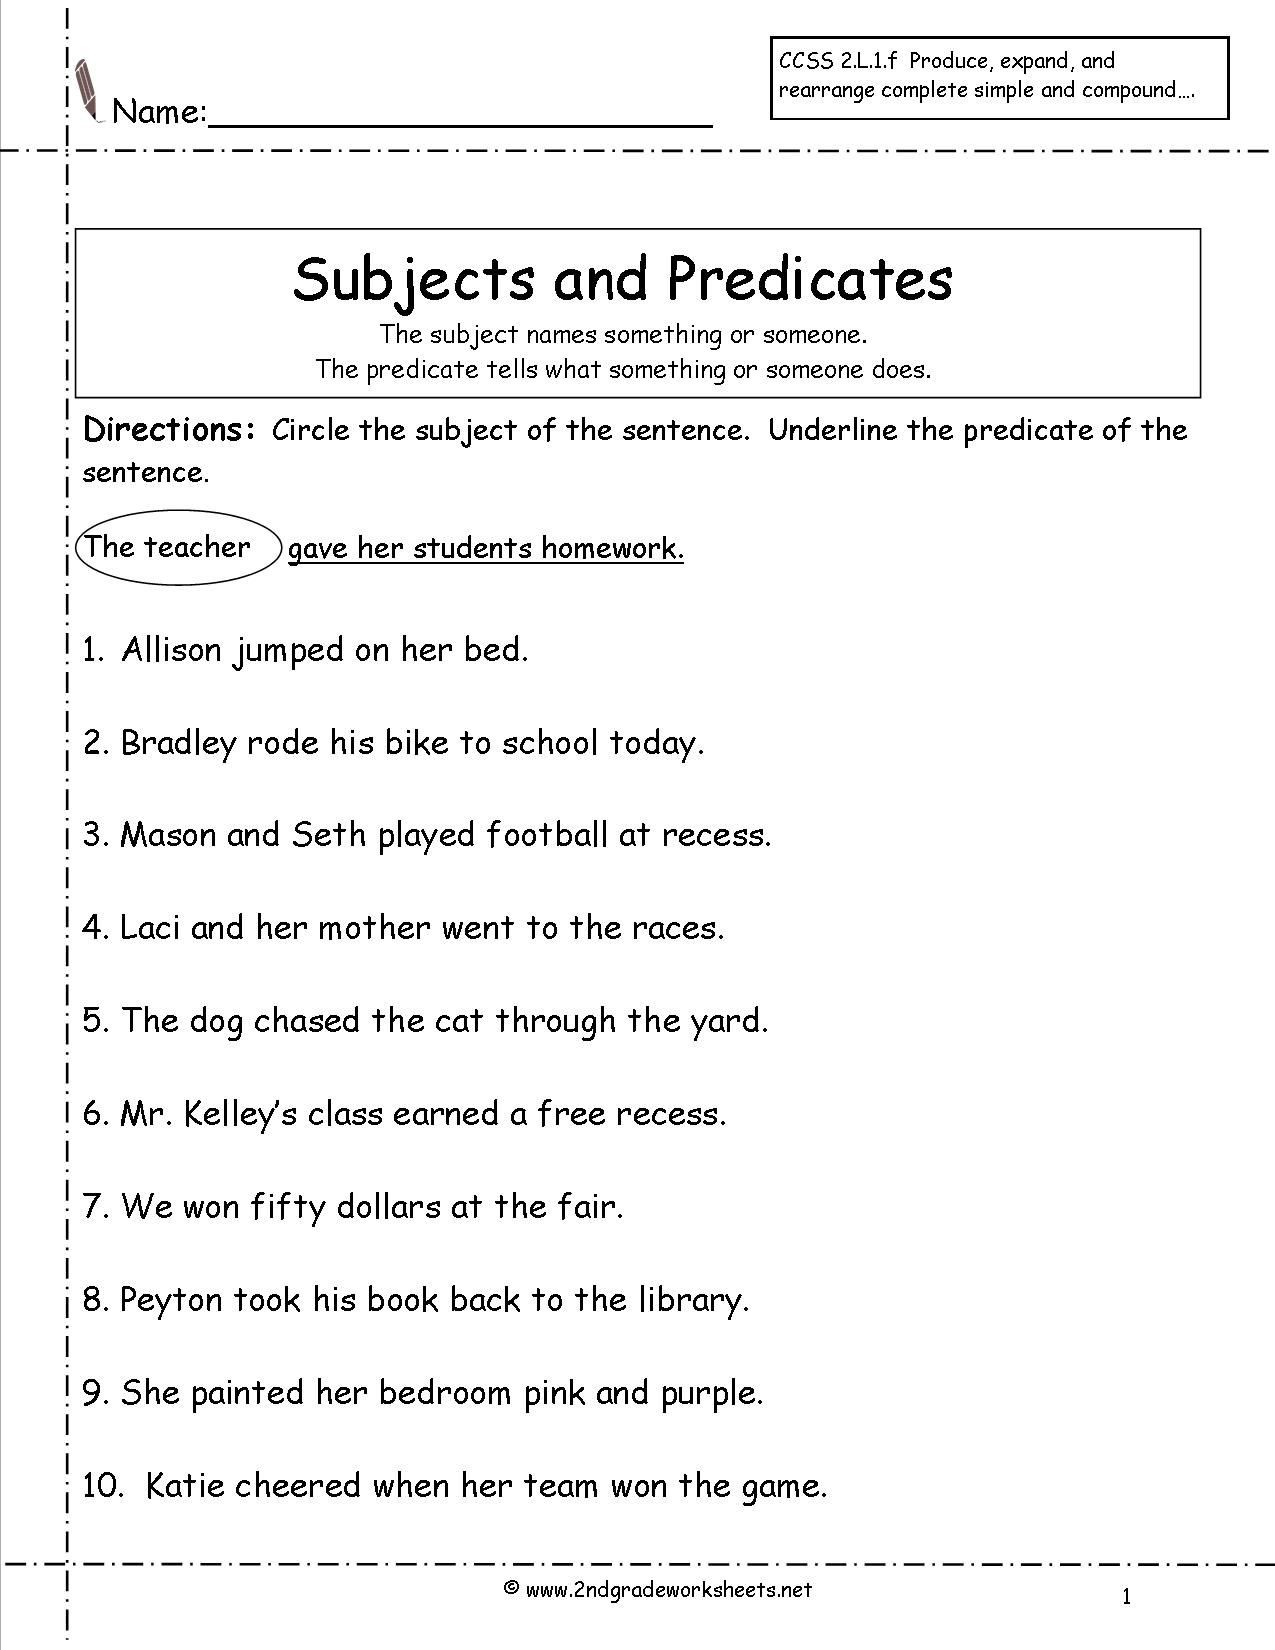 Subject Worksheets 3rd Grade Subject Predicate Worksheets 2nd Grade Google Search